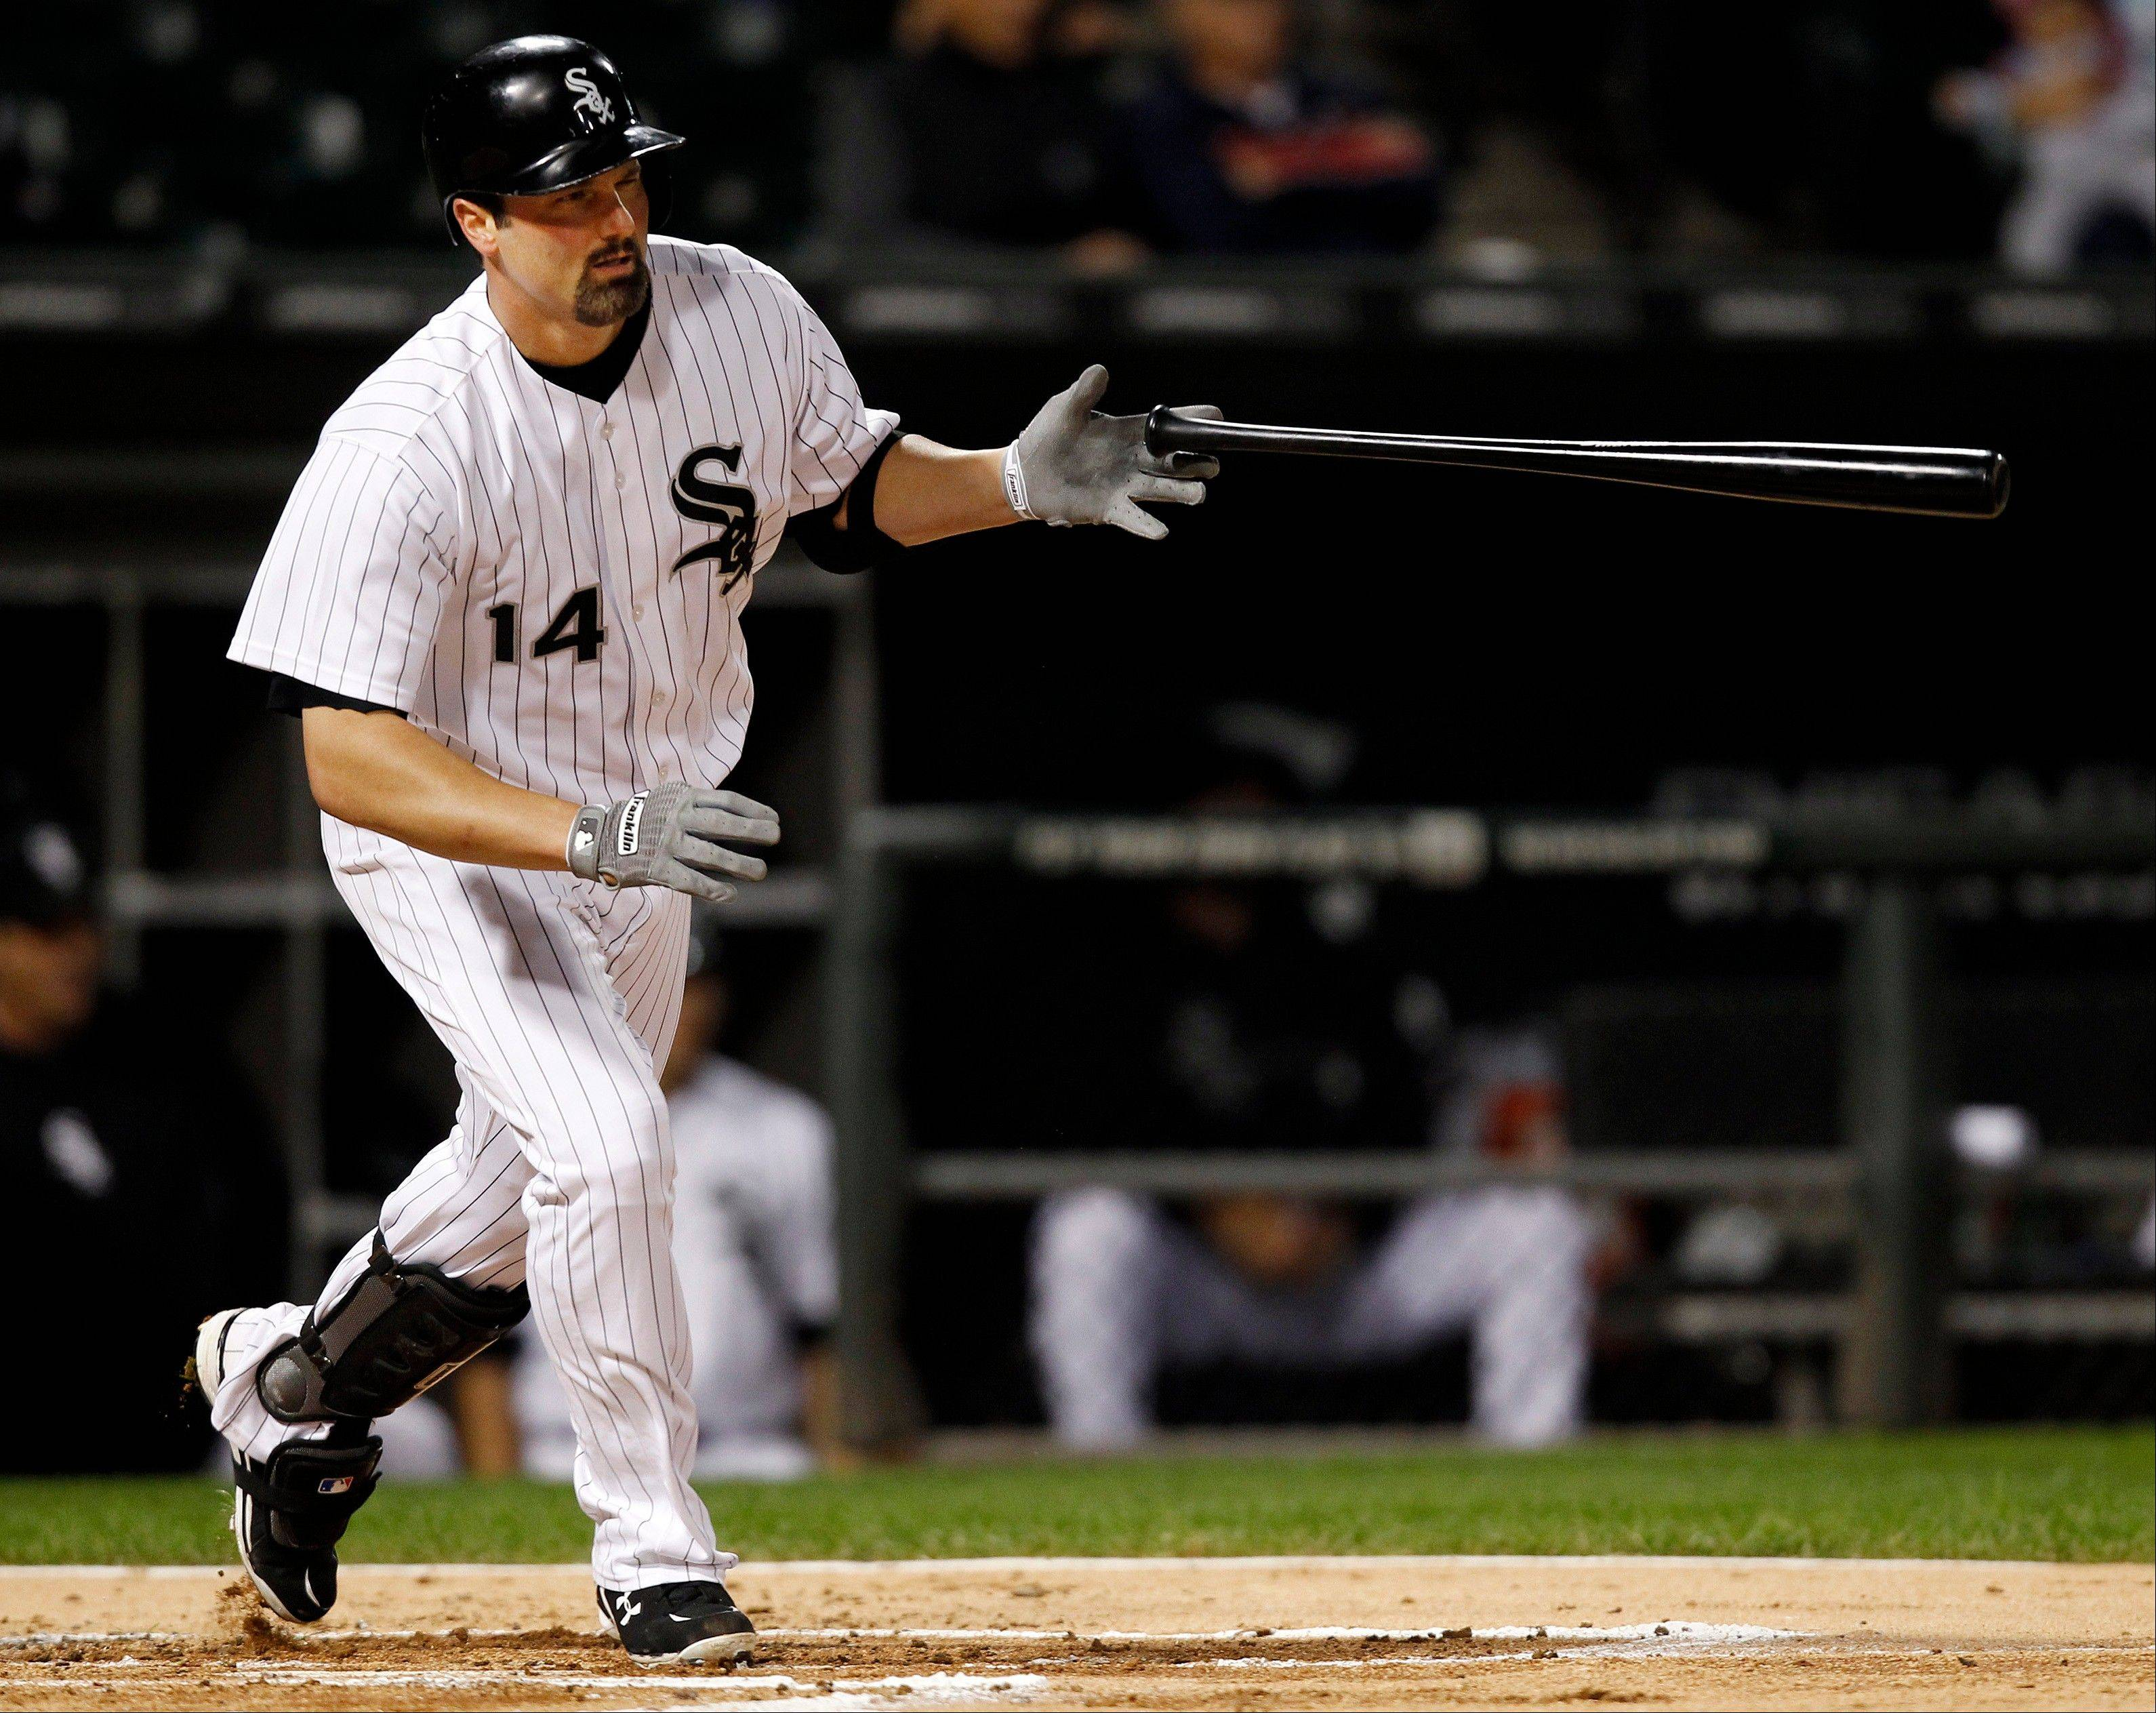 Konerko opens door to returning in 2014